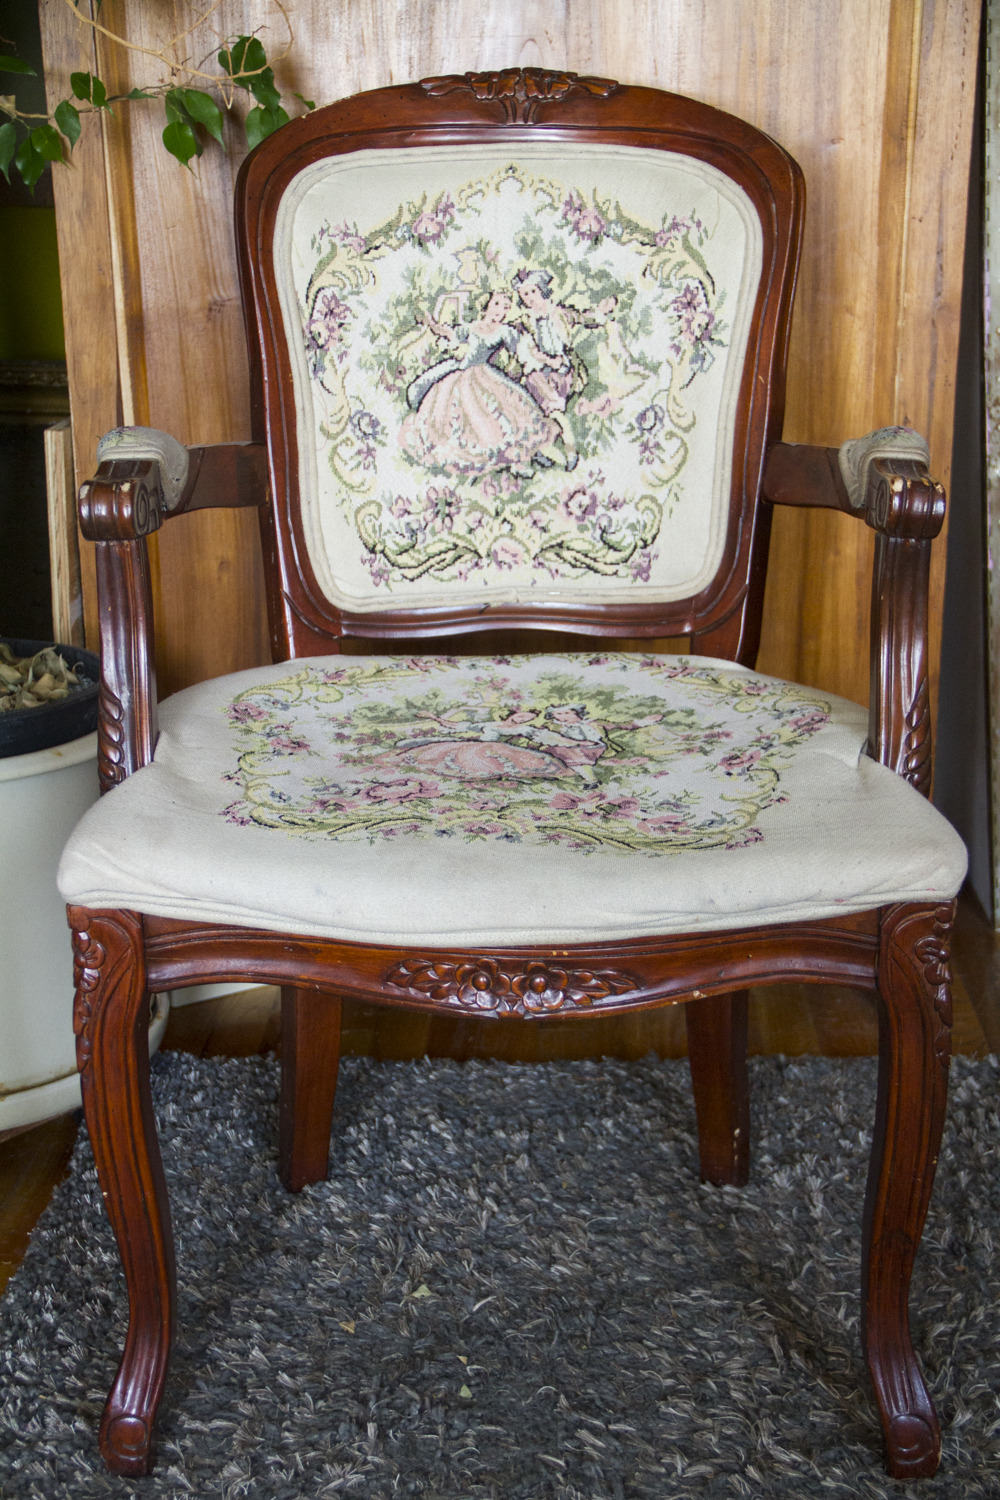 Queen Anne Furniture Antique Beautiful Antique Queen Anne Chair with Embroidered Cushions — Real Good Goods Co